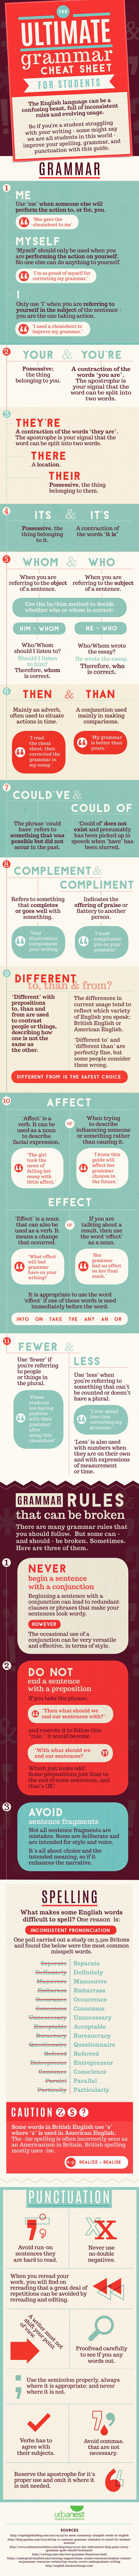 Infographic The ultimate English grammar cheat sheet